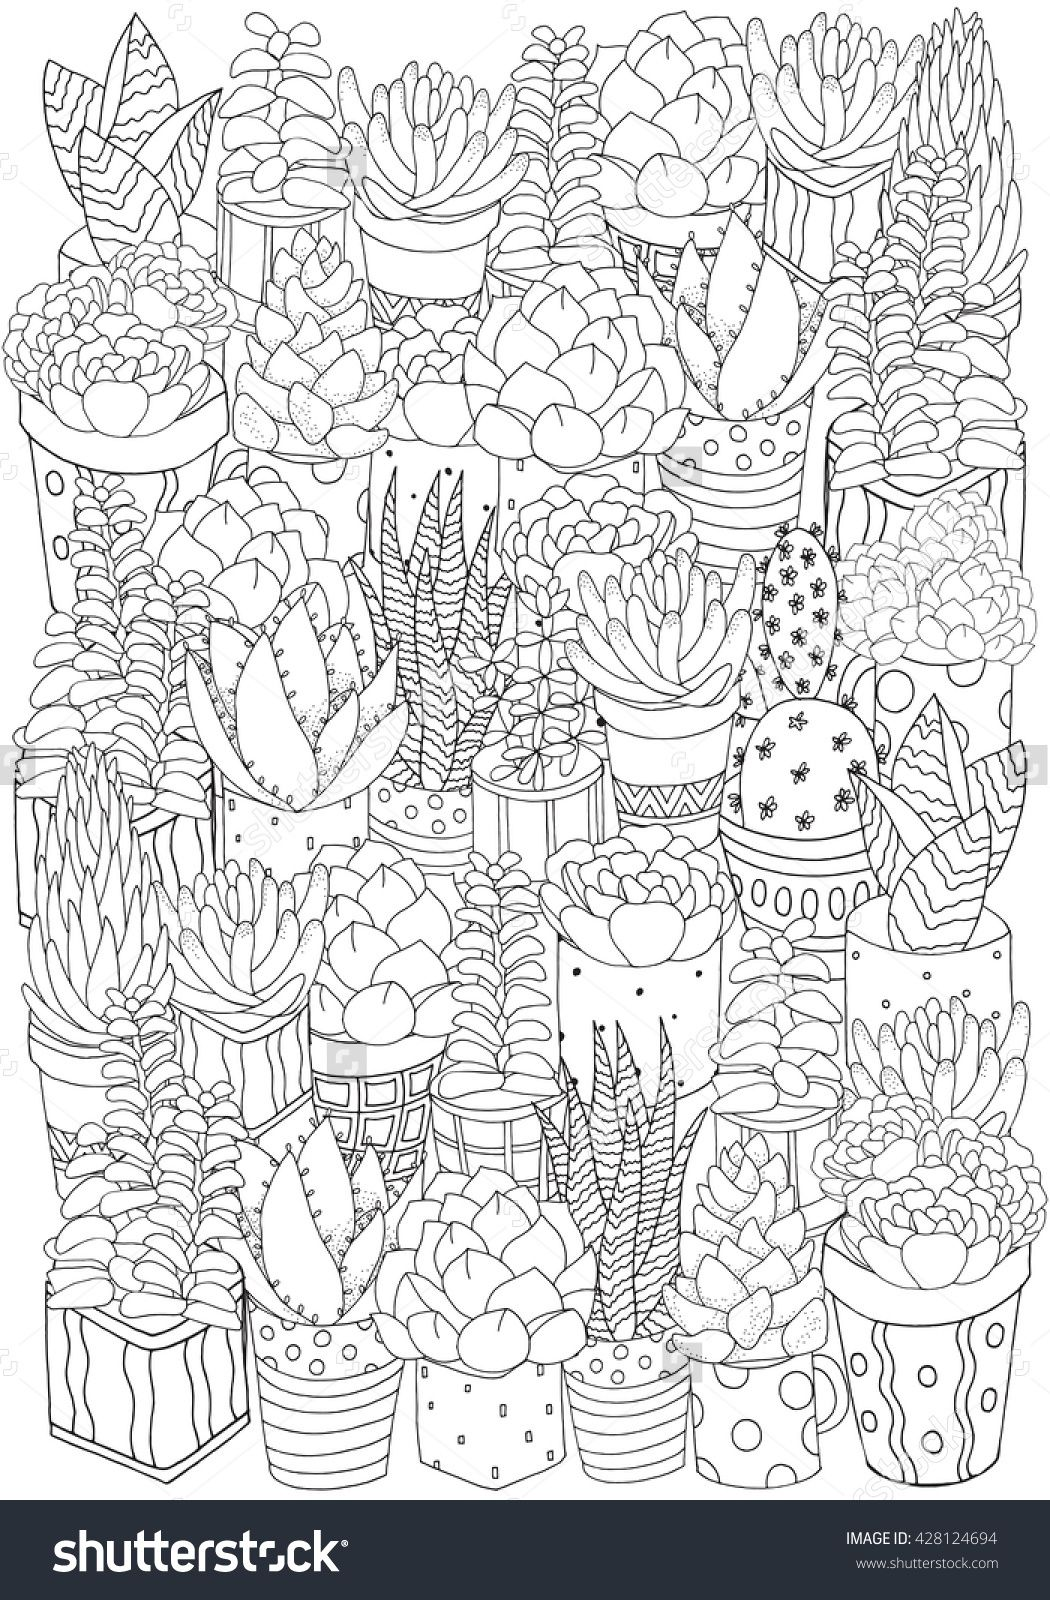 Hand Drawn Set Of Succulents Cactuses And Pots Doodles Elements Black And White Coloring Book Page For A Coloring Books Coloring Pages Free Coloring Pages